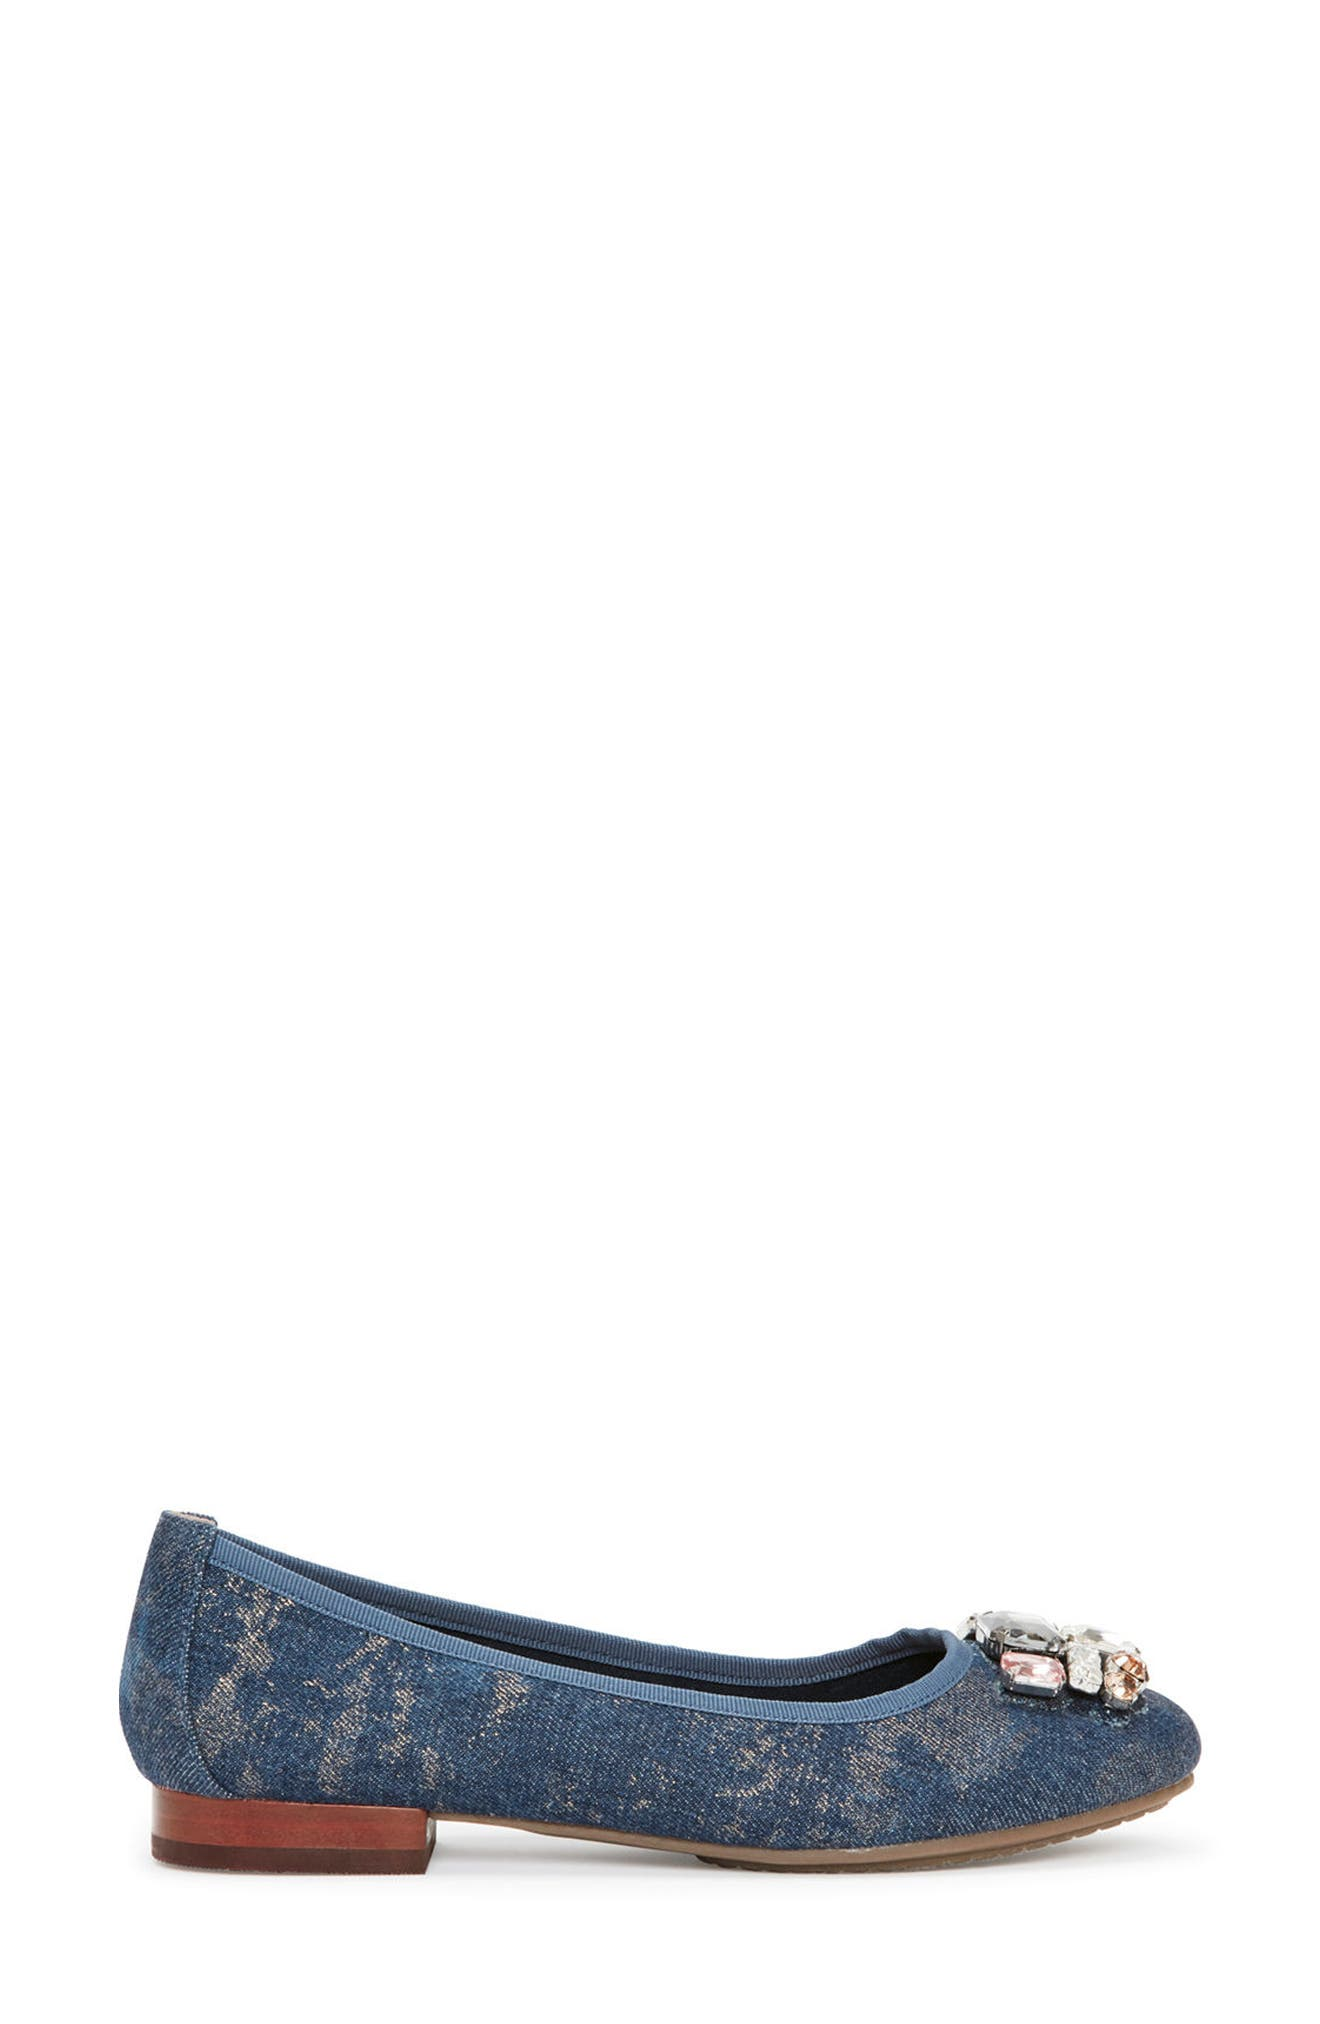 Sapphire Crystal Embellished Flat,                             Alternate thumbnail 3, color,                             Blue Champagne Denim Fabric